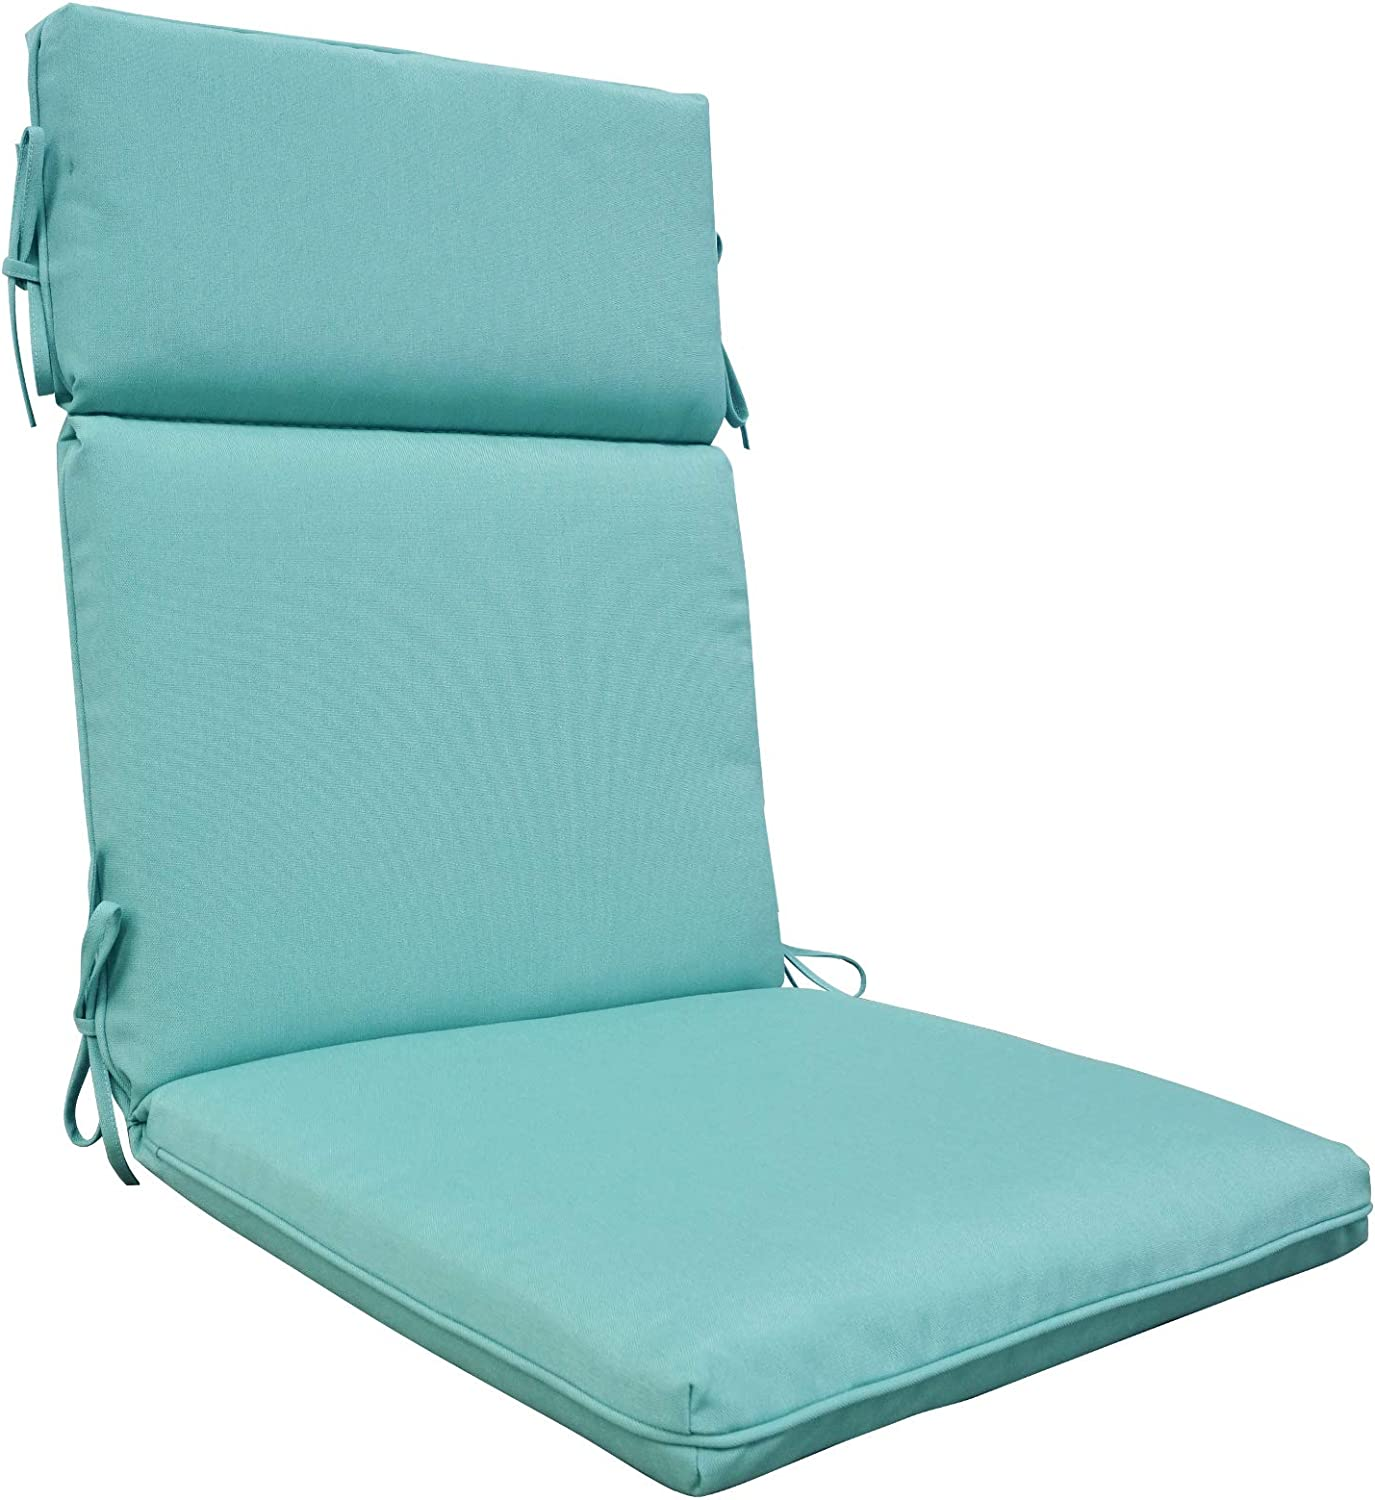 BOSSIMA Outdoor Indoor High Back Chair Cushions Comfort Replacement Patio Seating Cushions Light Blue